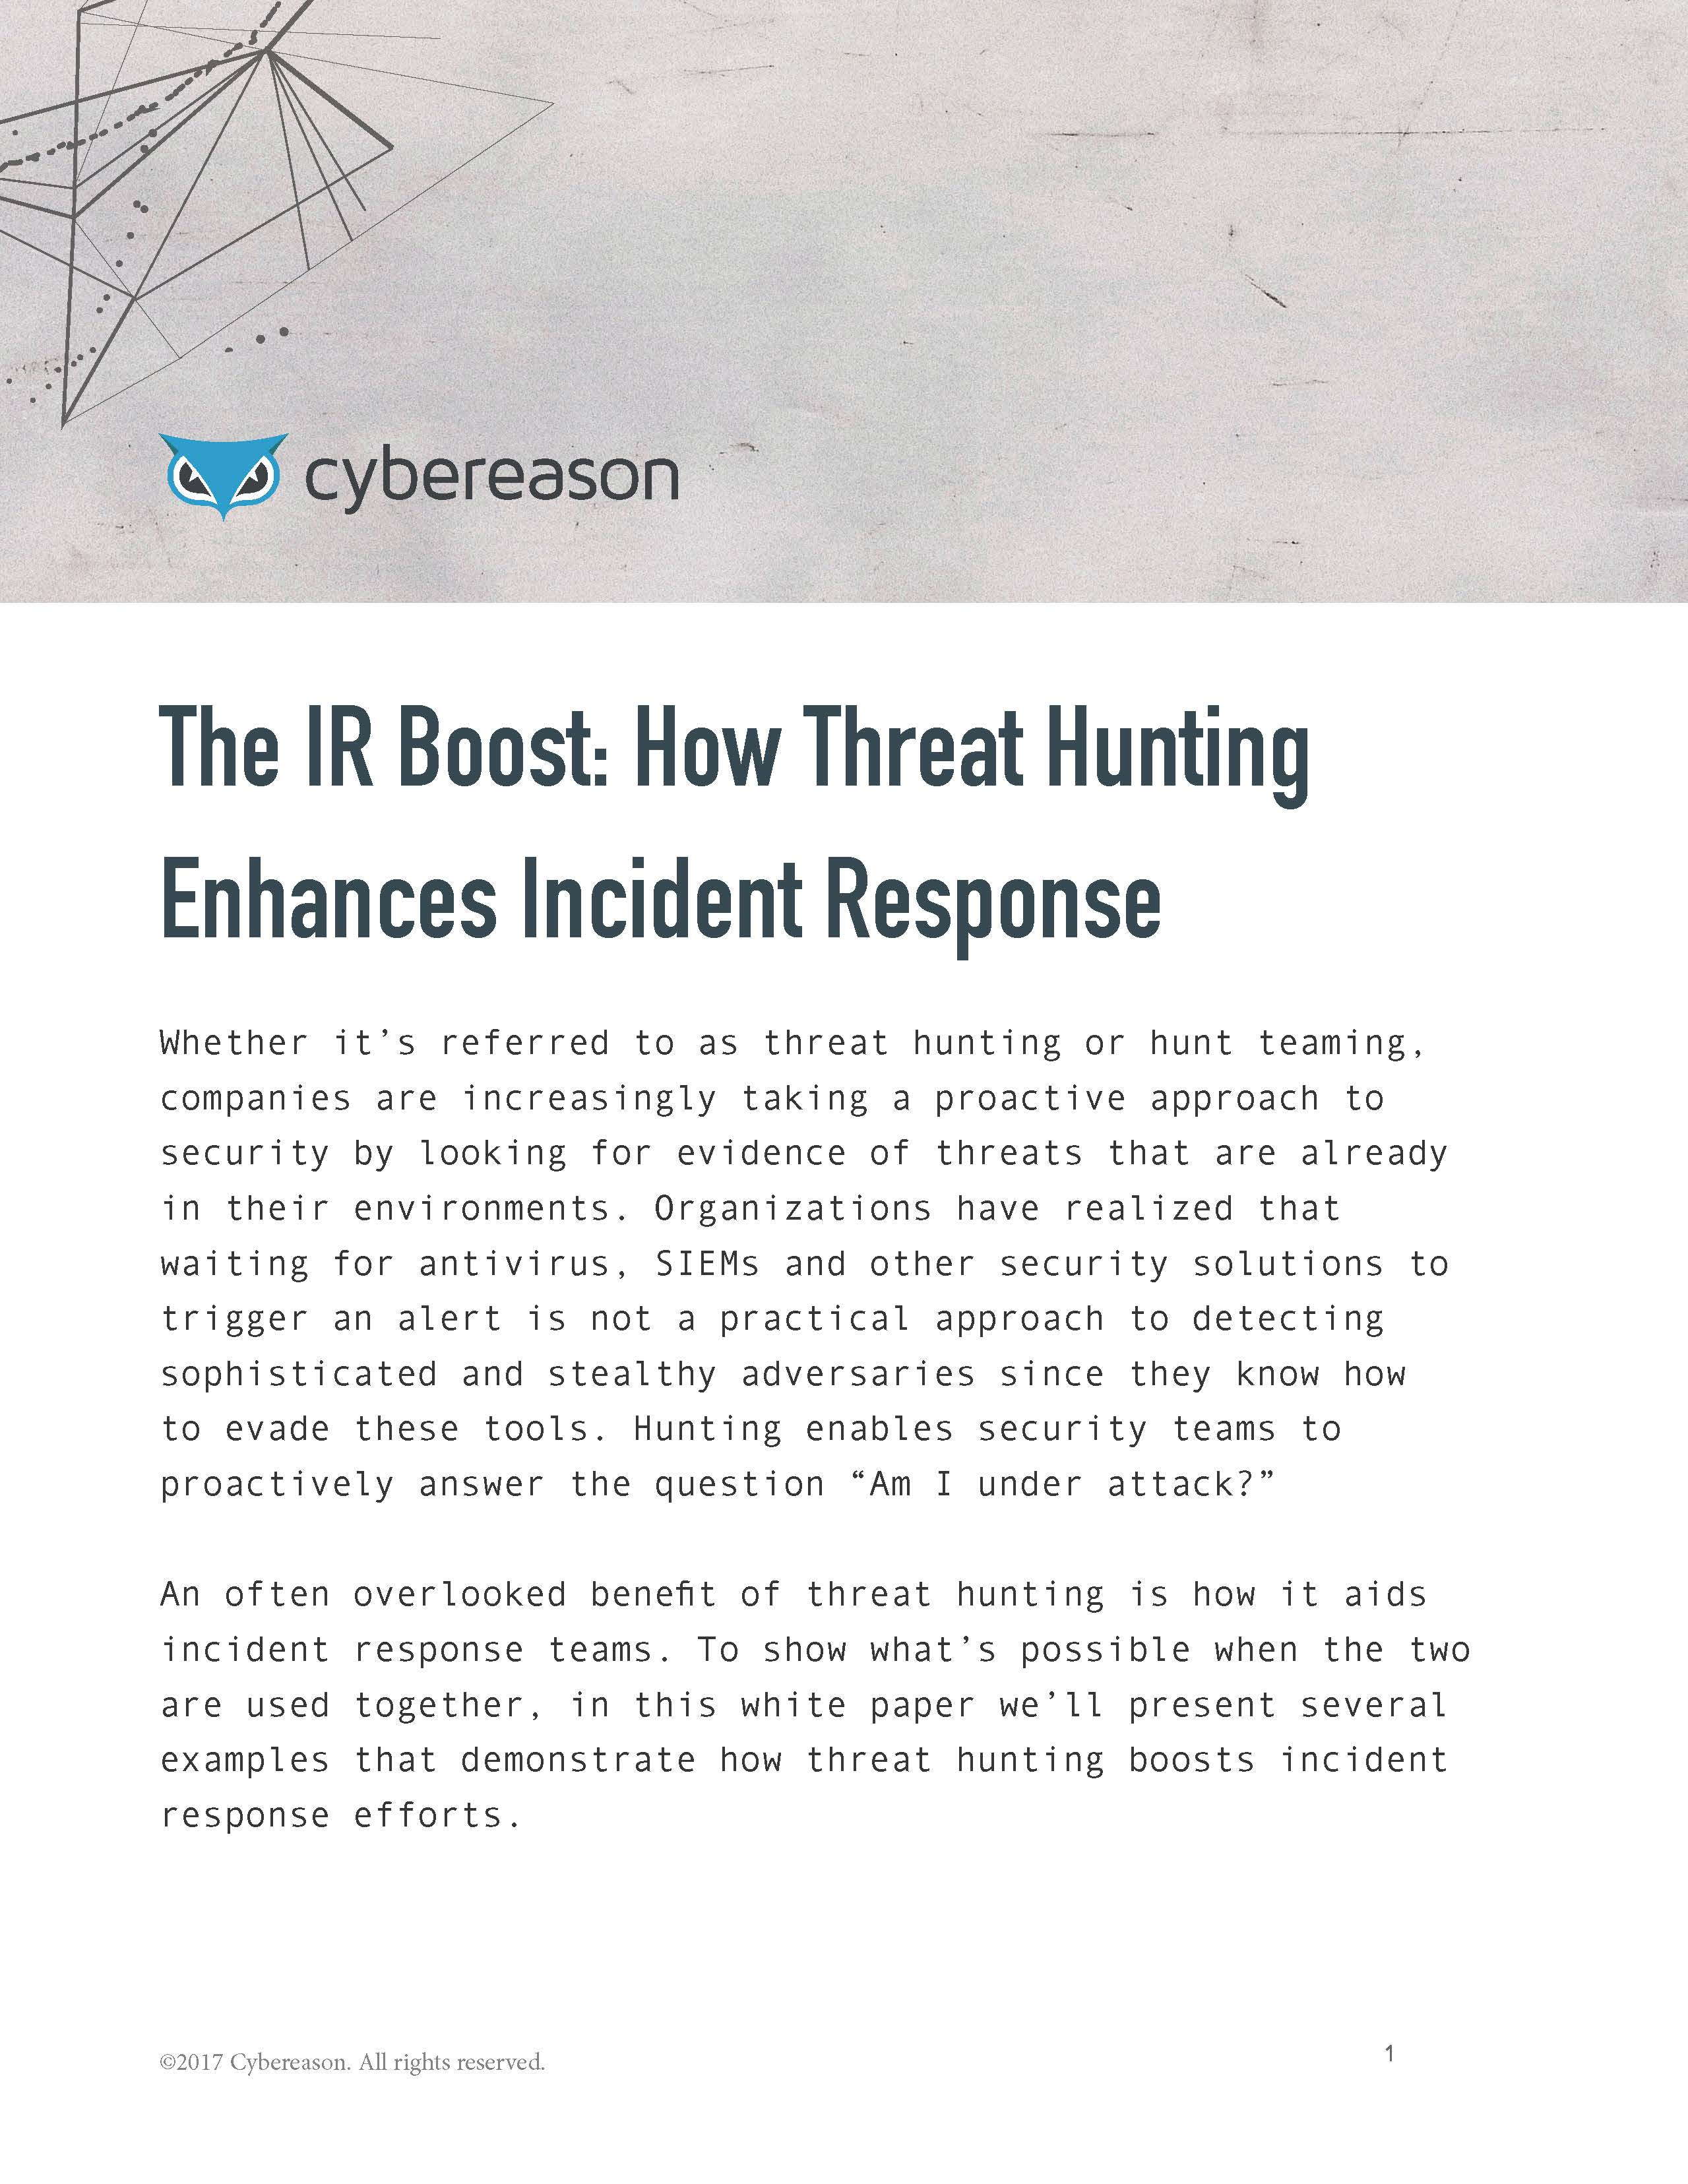 The IR boost: How threat hunting enhances incident response